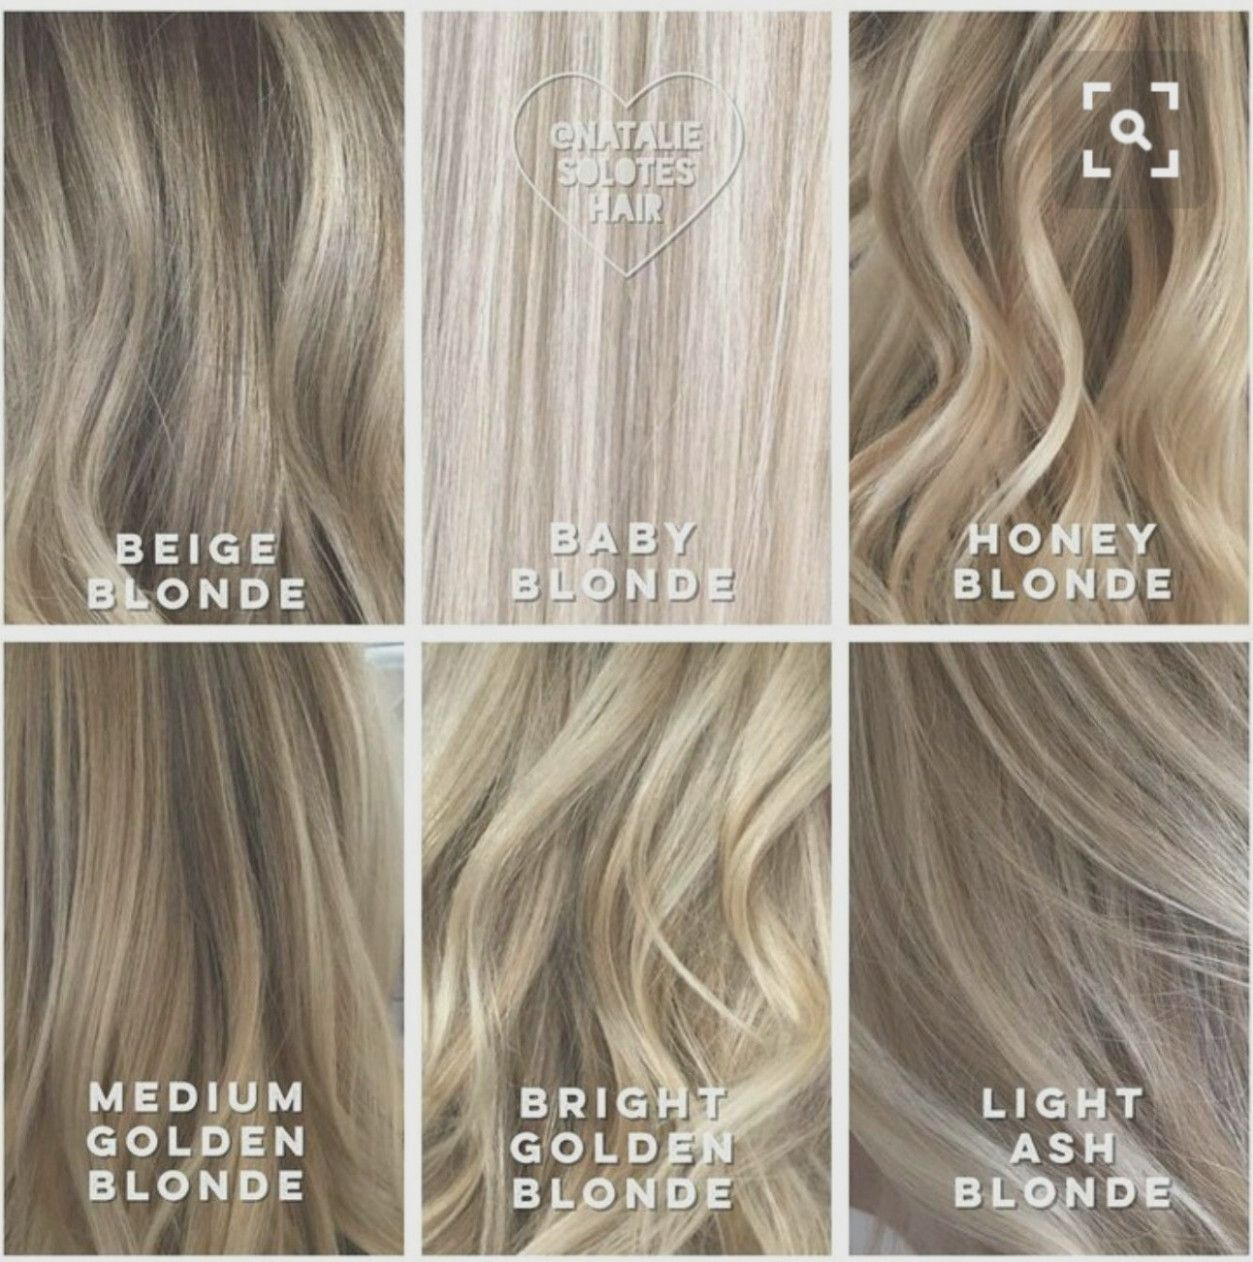 Pin By Fabiola Gayoso On Tresses Aveda Hair Color Hair Color Swatches Pravana Hair Color